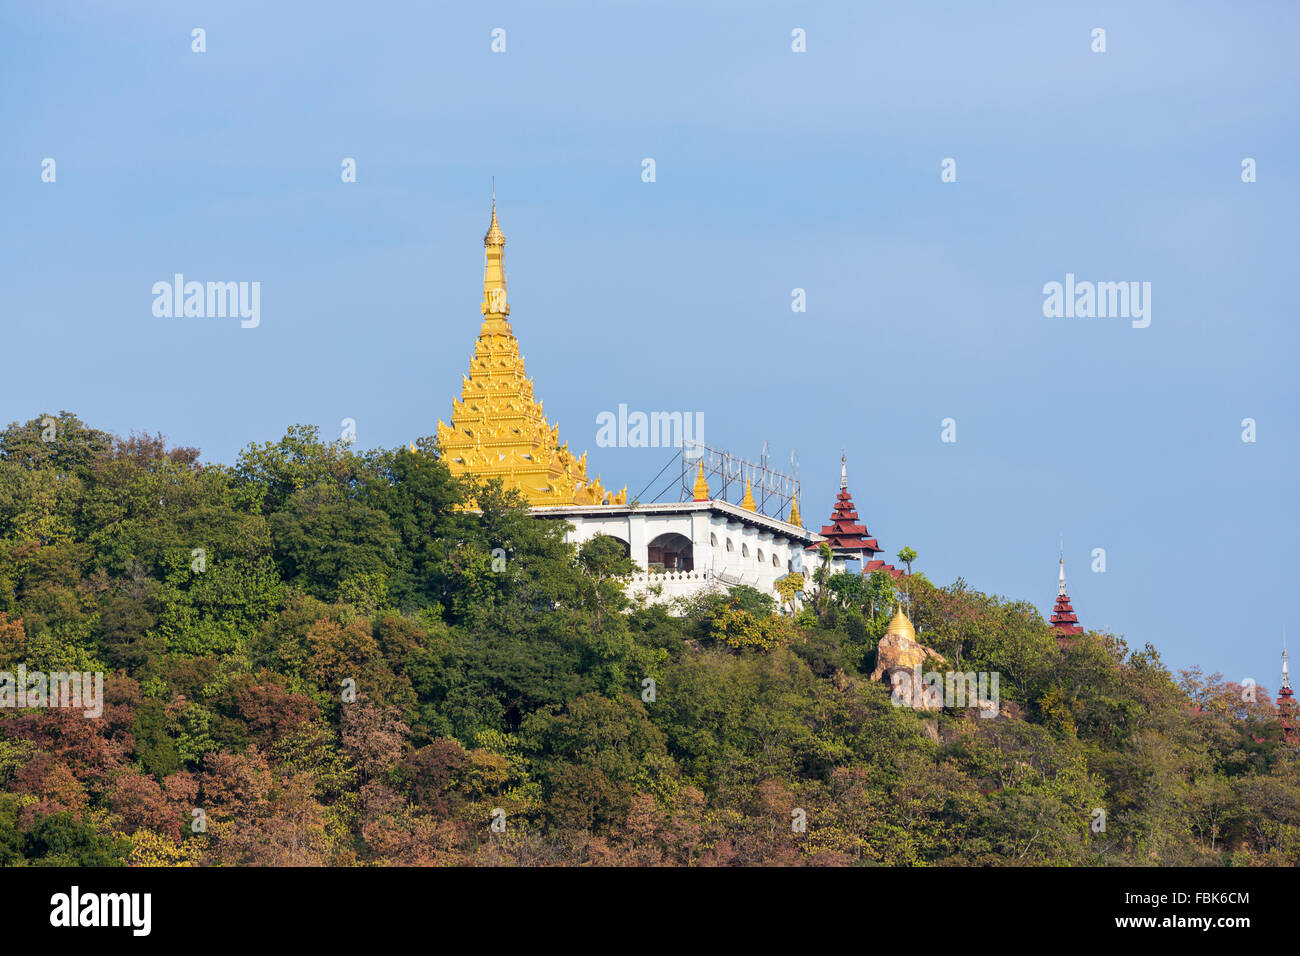 Typical gilded stupa of a shrine on the slopes of Mandalay Hill, Mandalay, Myanmar (Burma) under a clear blue sky - Stock Image